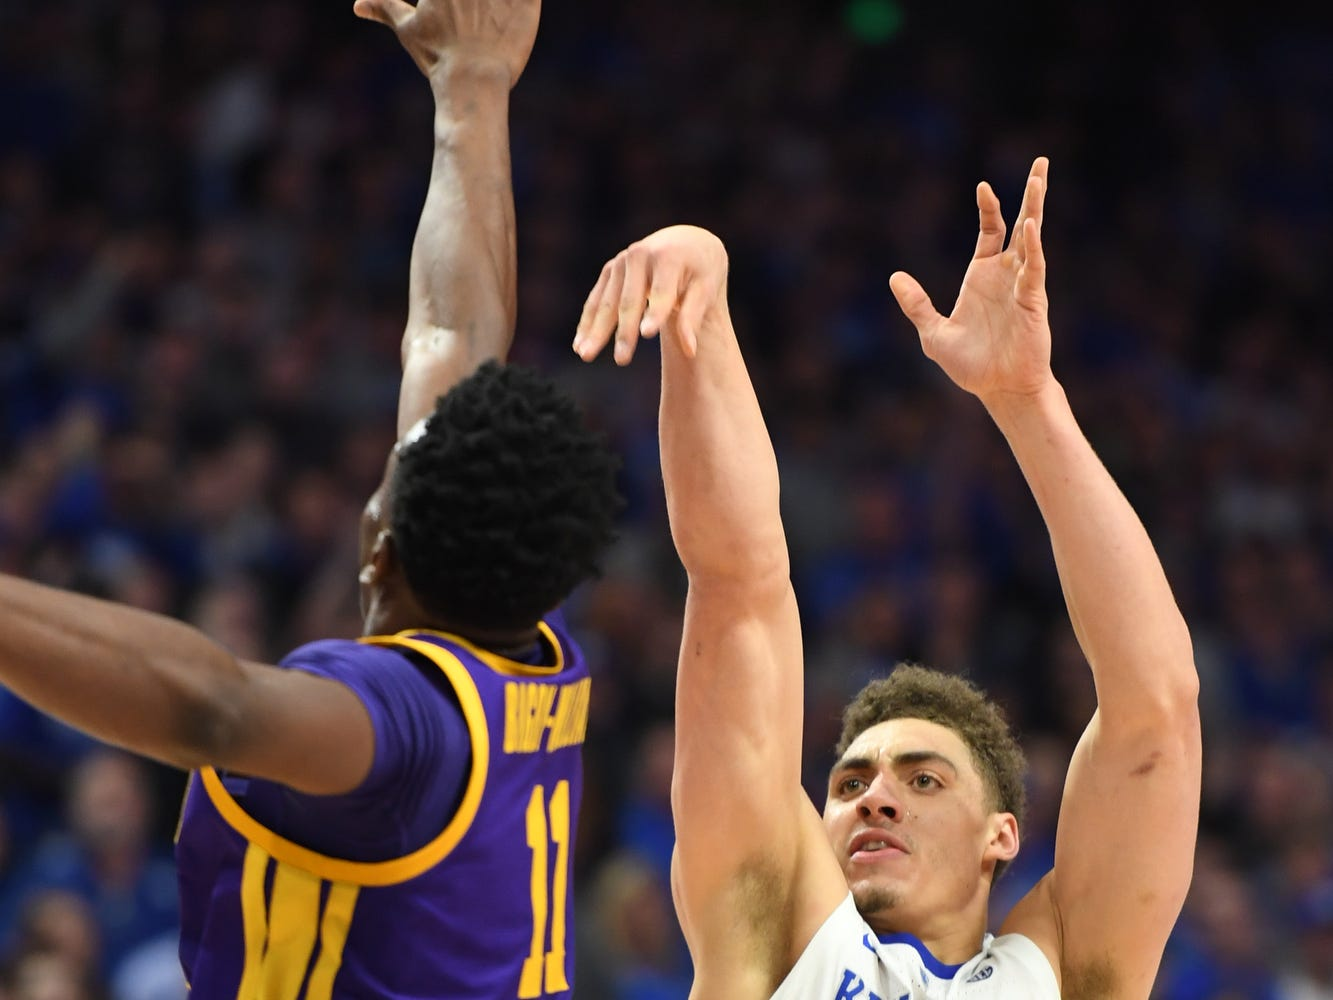 UK F Reid Travis shoots during the University of Kentucky men's basketball game against Louisiana State University at Rupp Arena on Feb. 12, 2018.